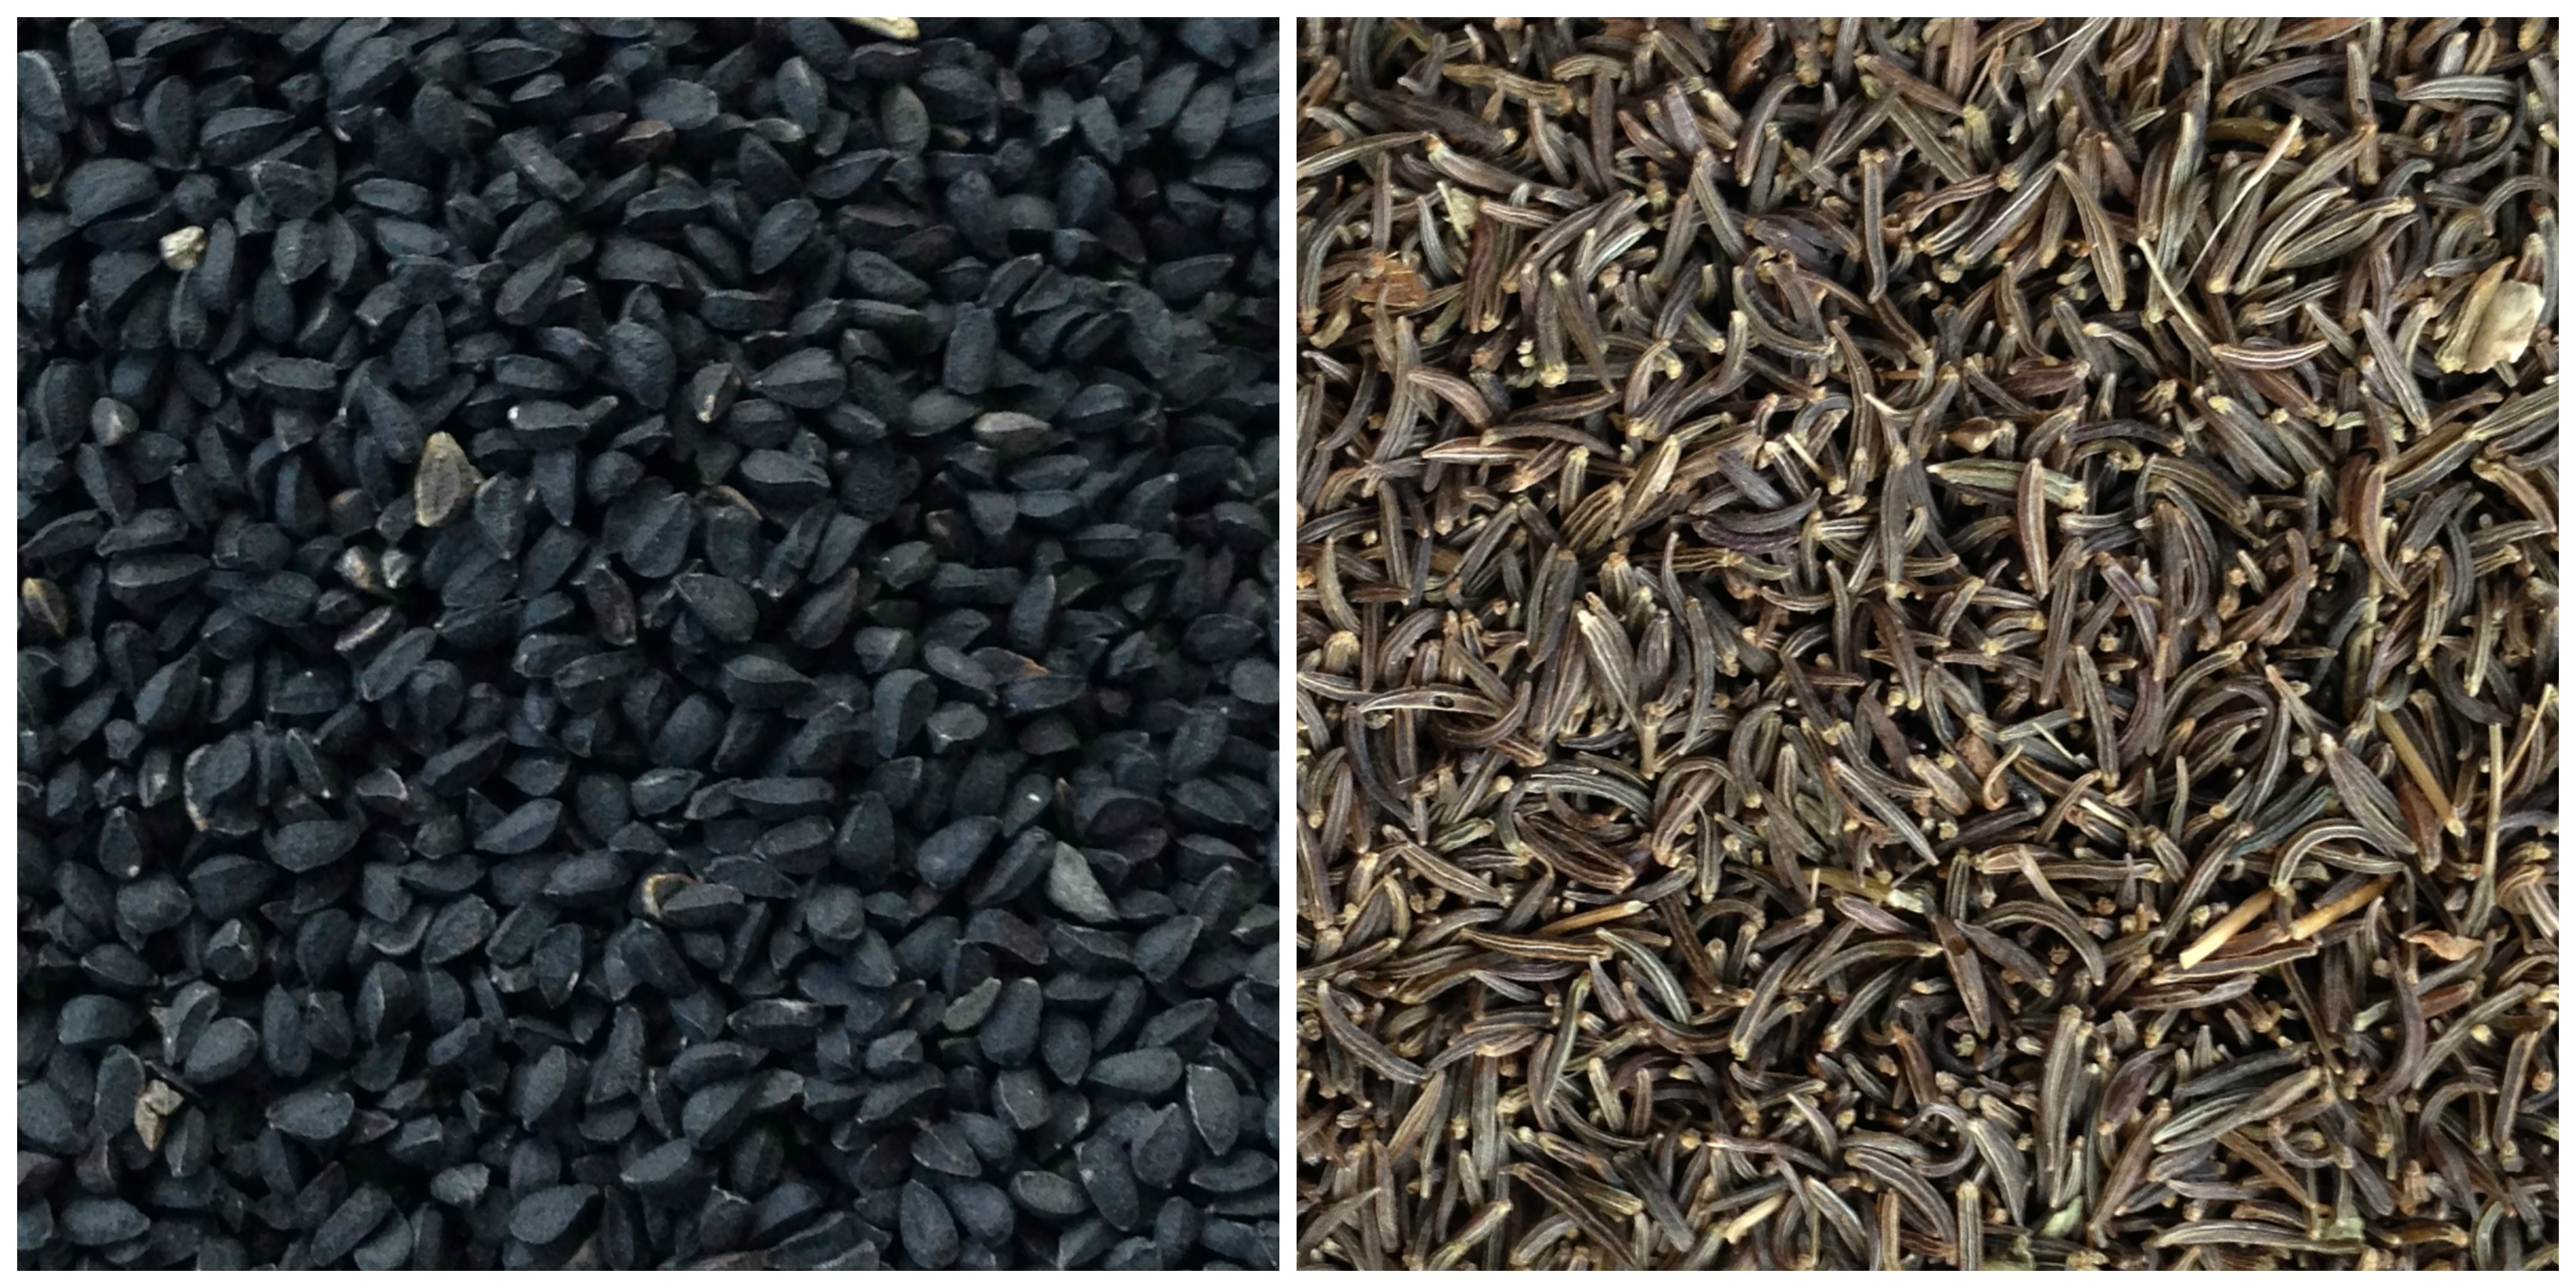 Buy black cumin seeds